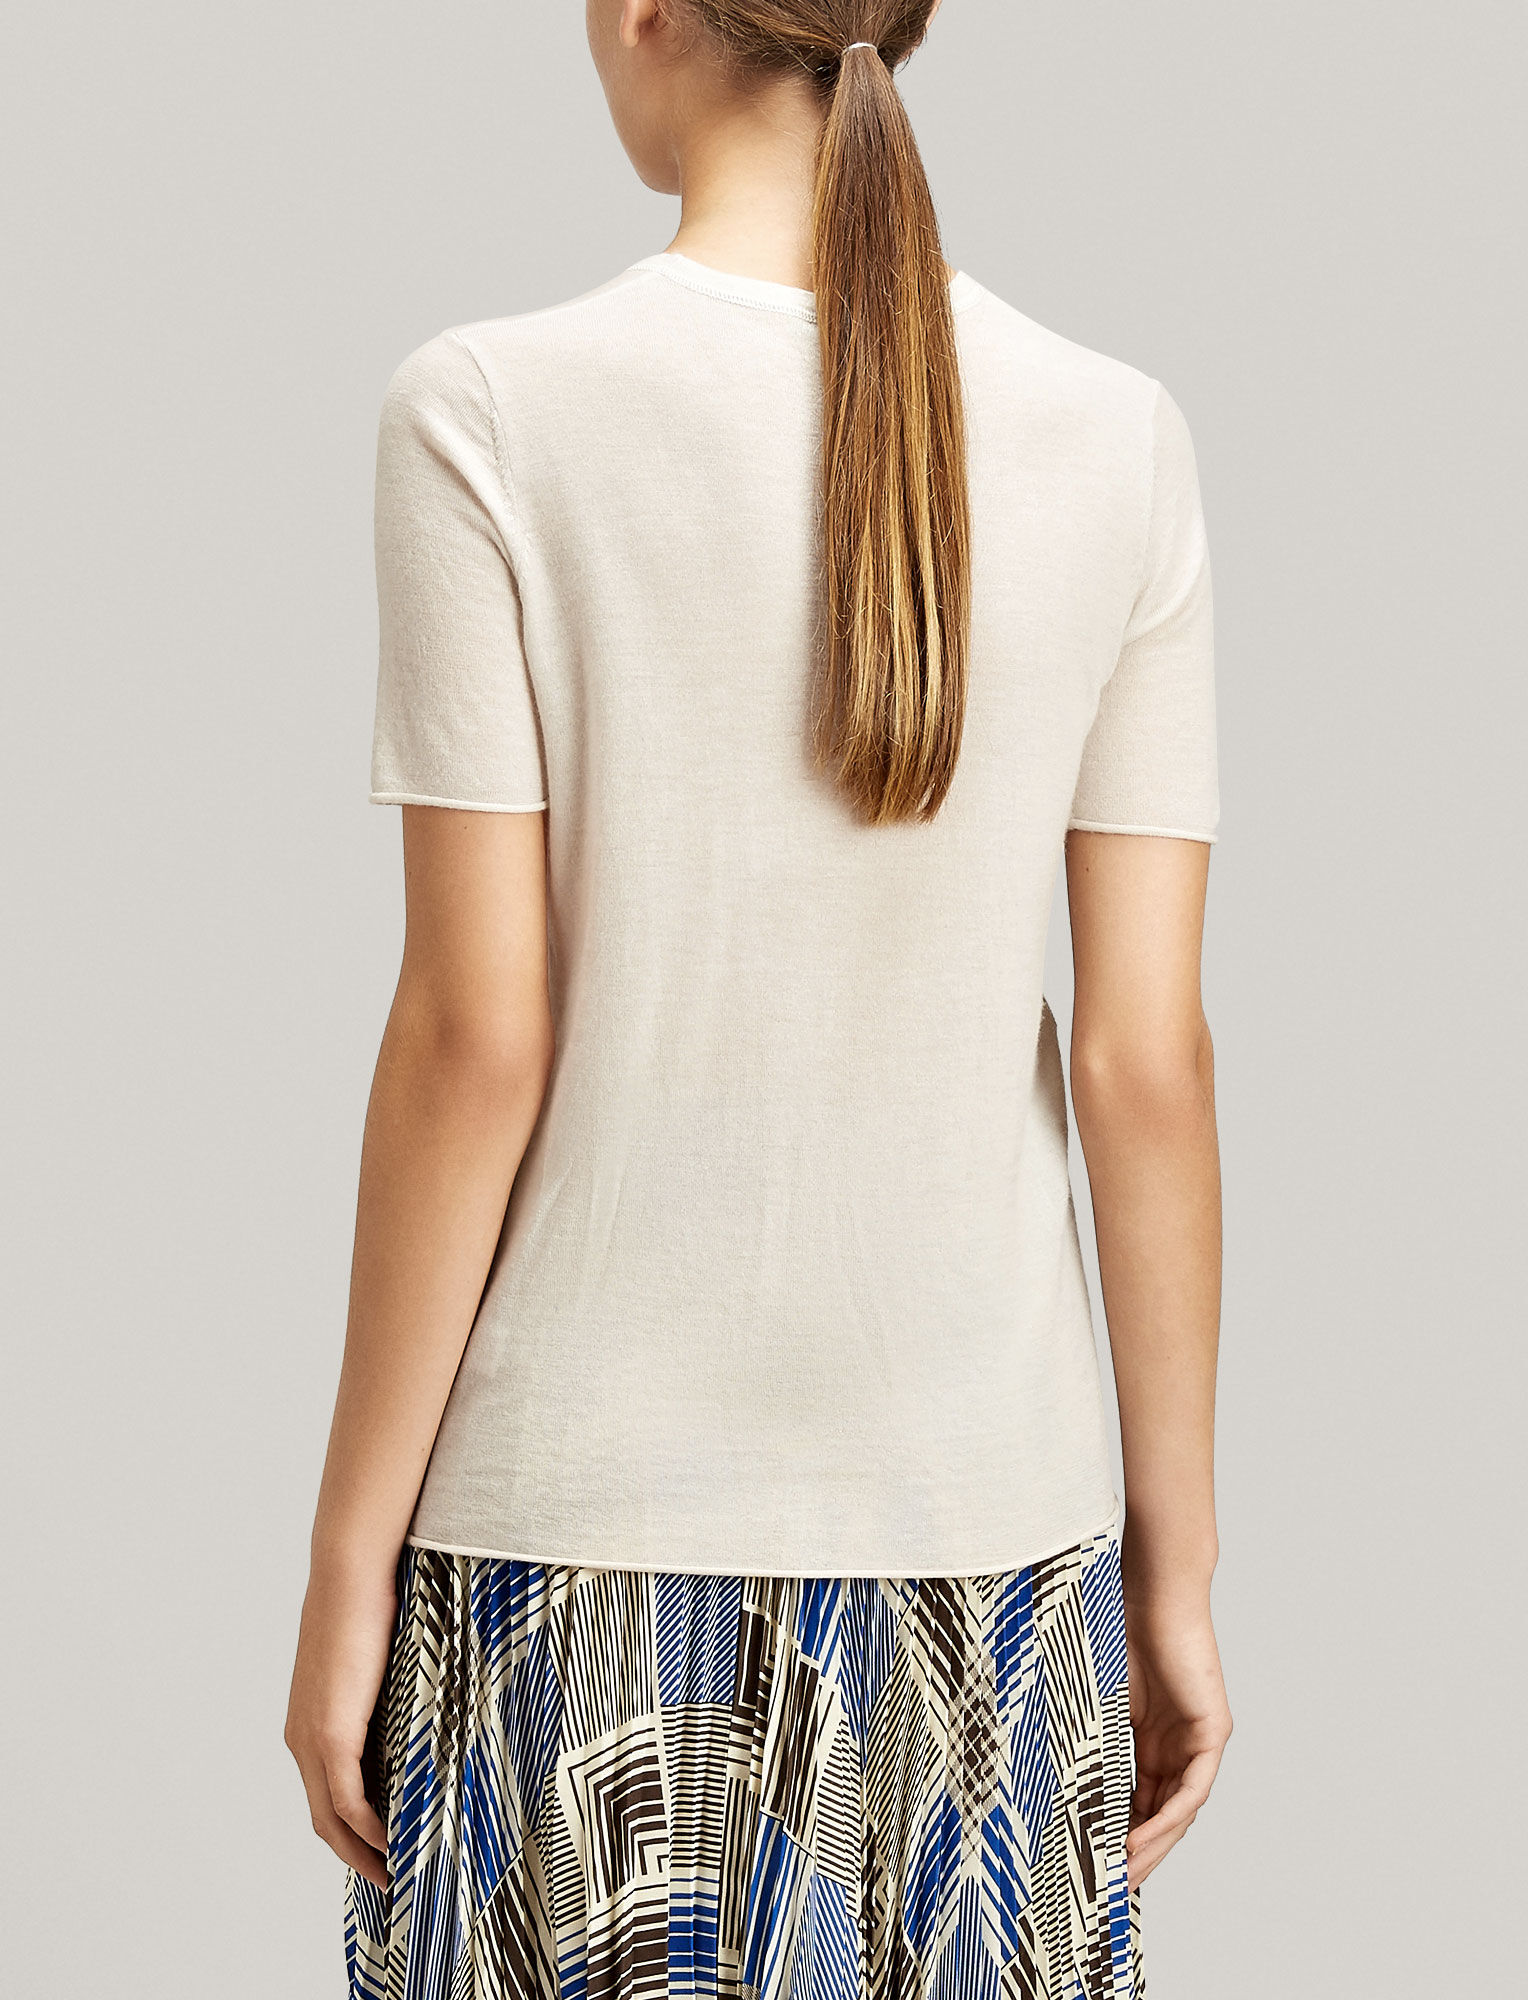 Joseph, Cashair Knit Tee, in MARBLE